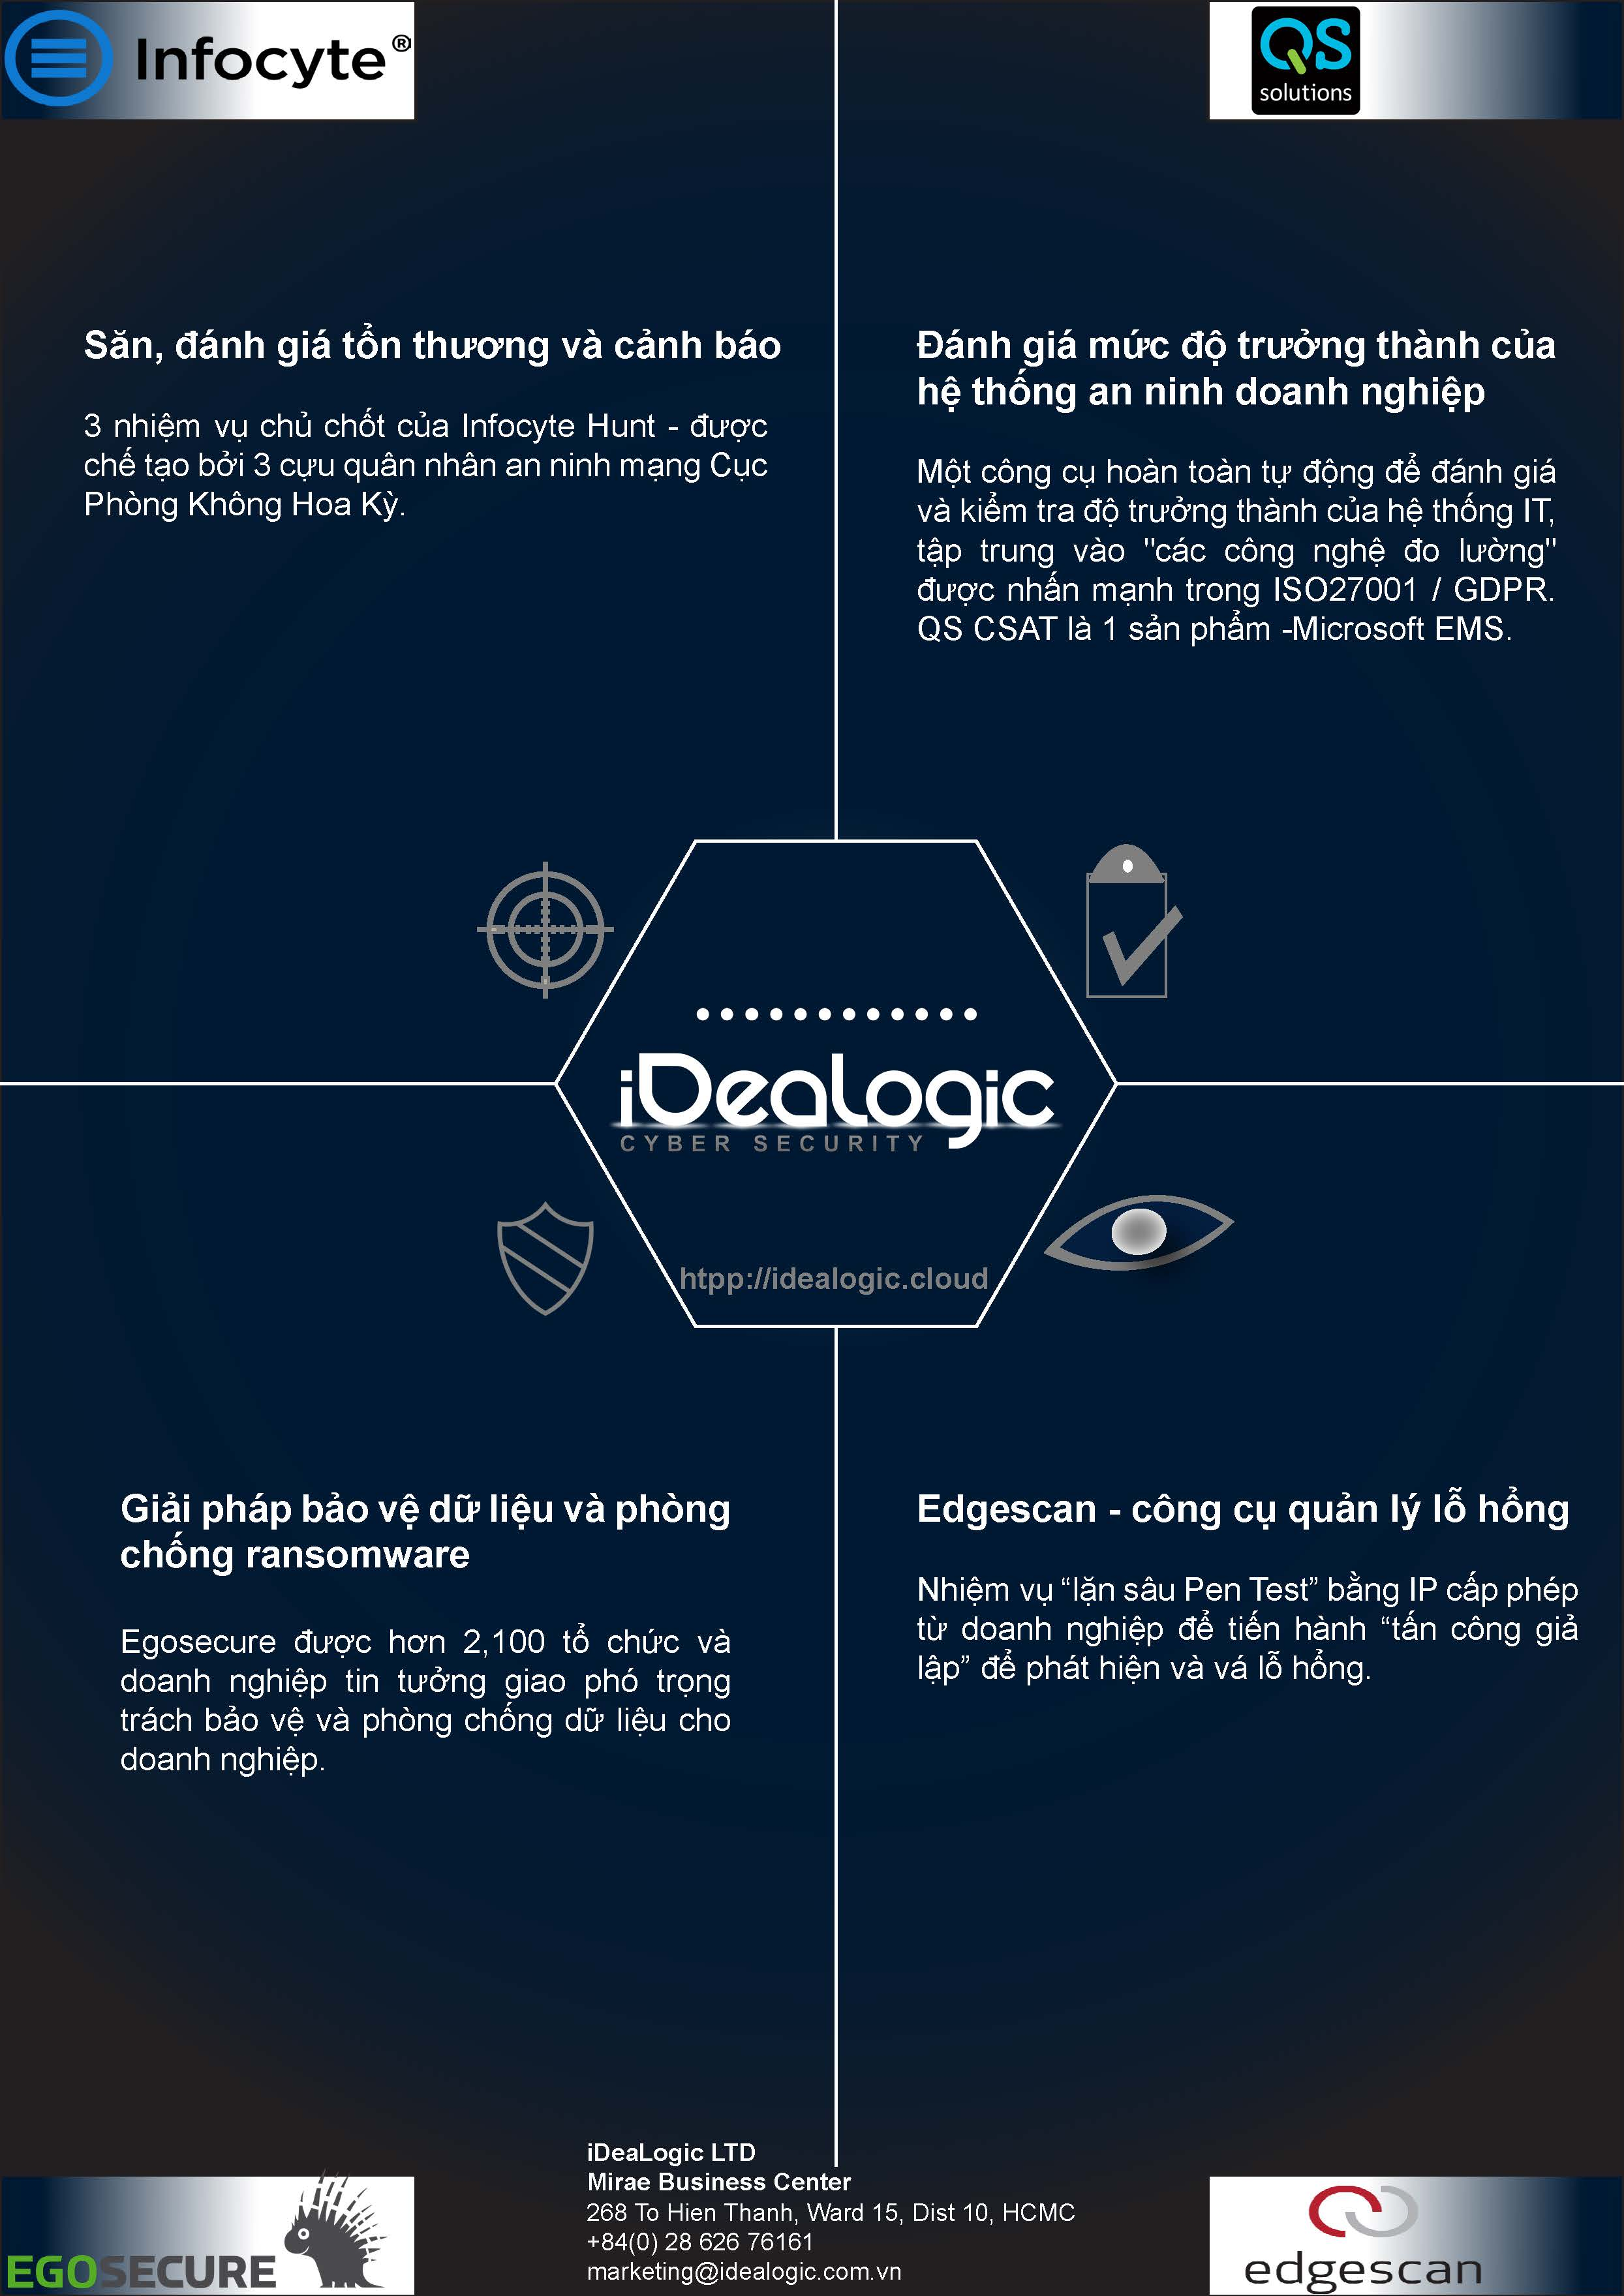 iDeaLogic Cyber security